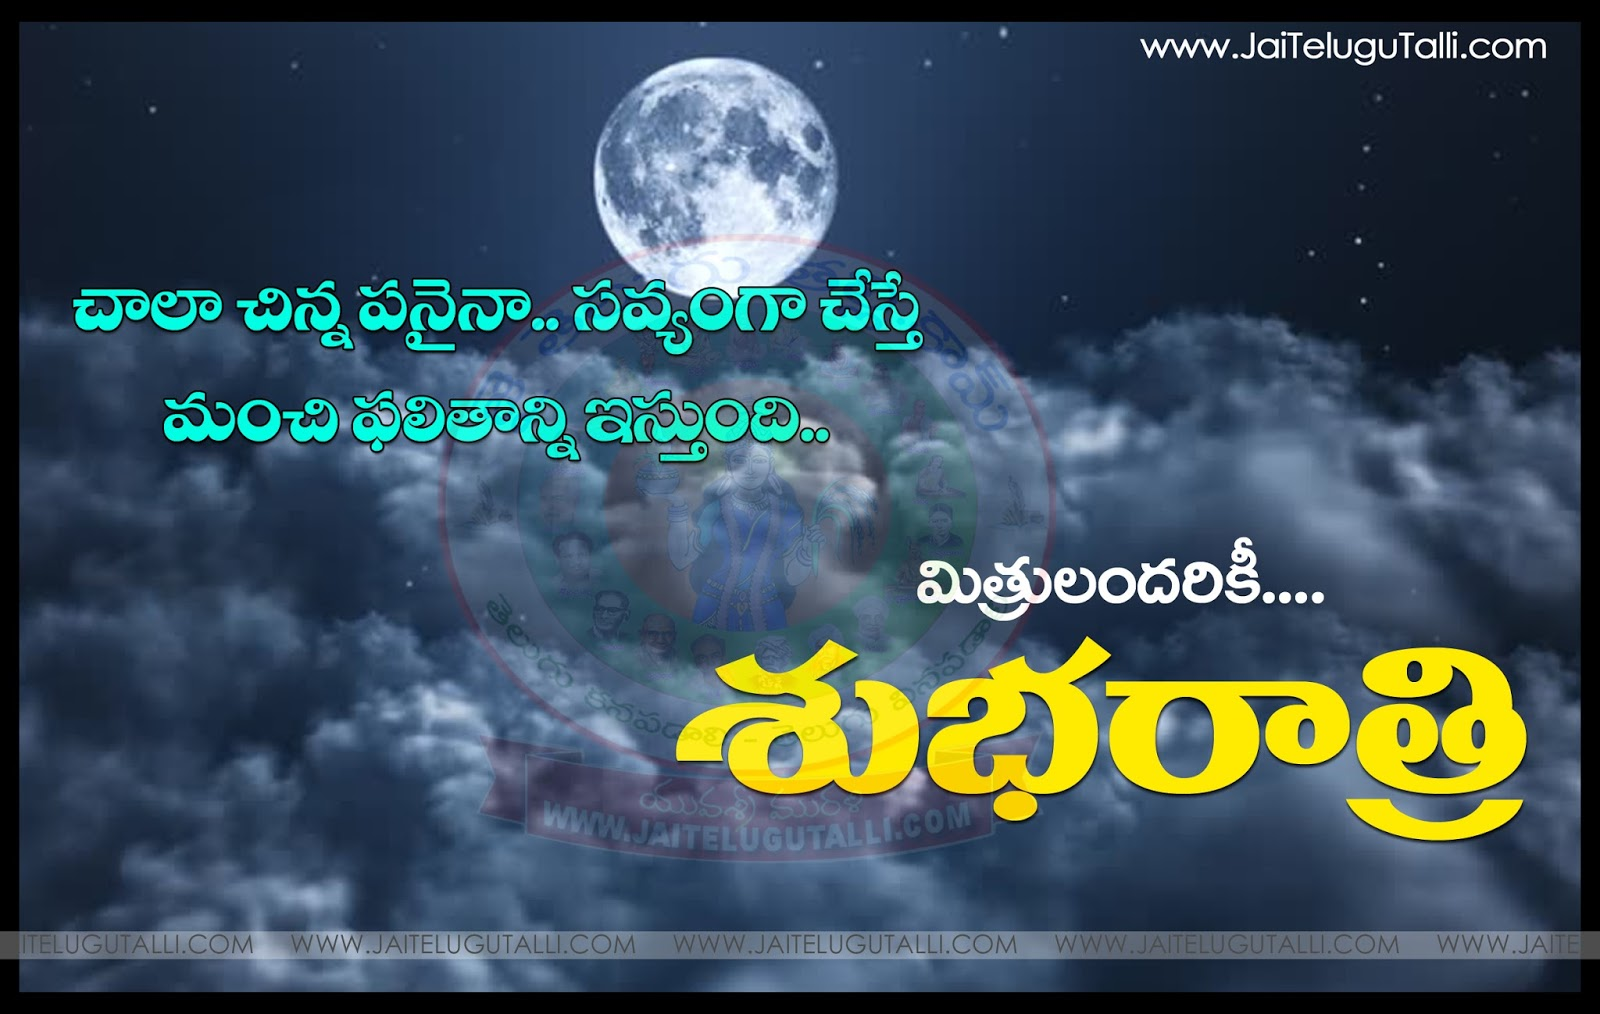 Best telugu good night quotes pictures top good night greetings for good night wallpapers telugu quotes wishes for whatsapp m4hsunfo Choice Image